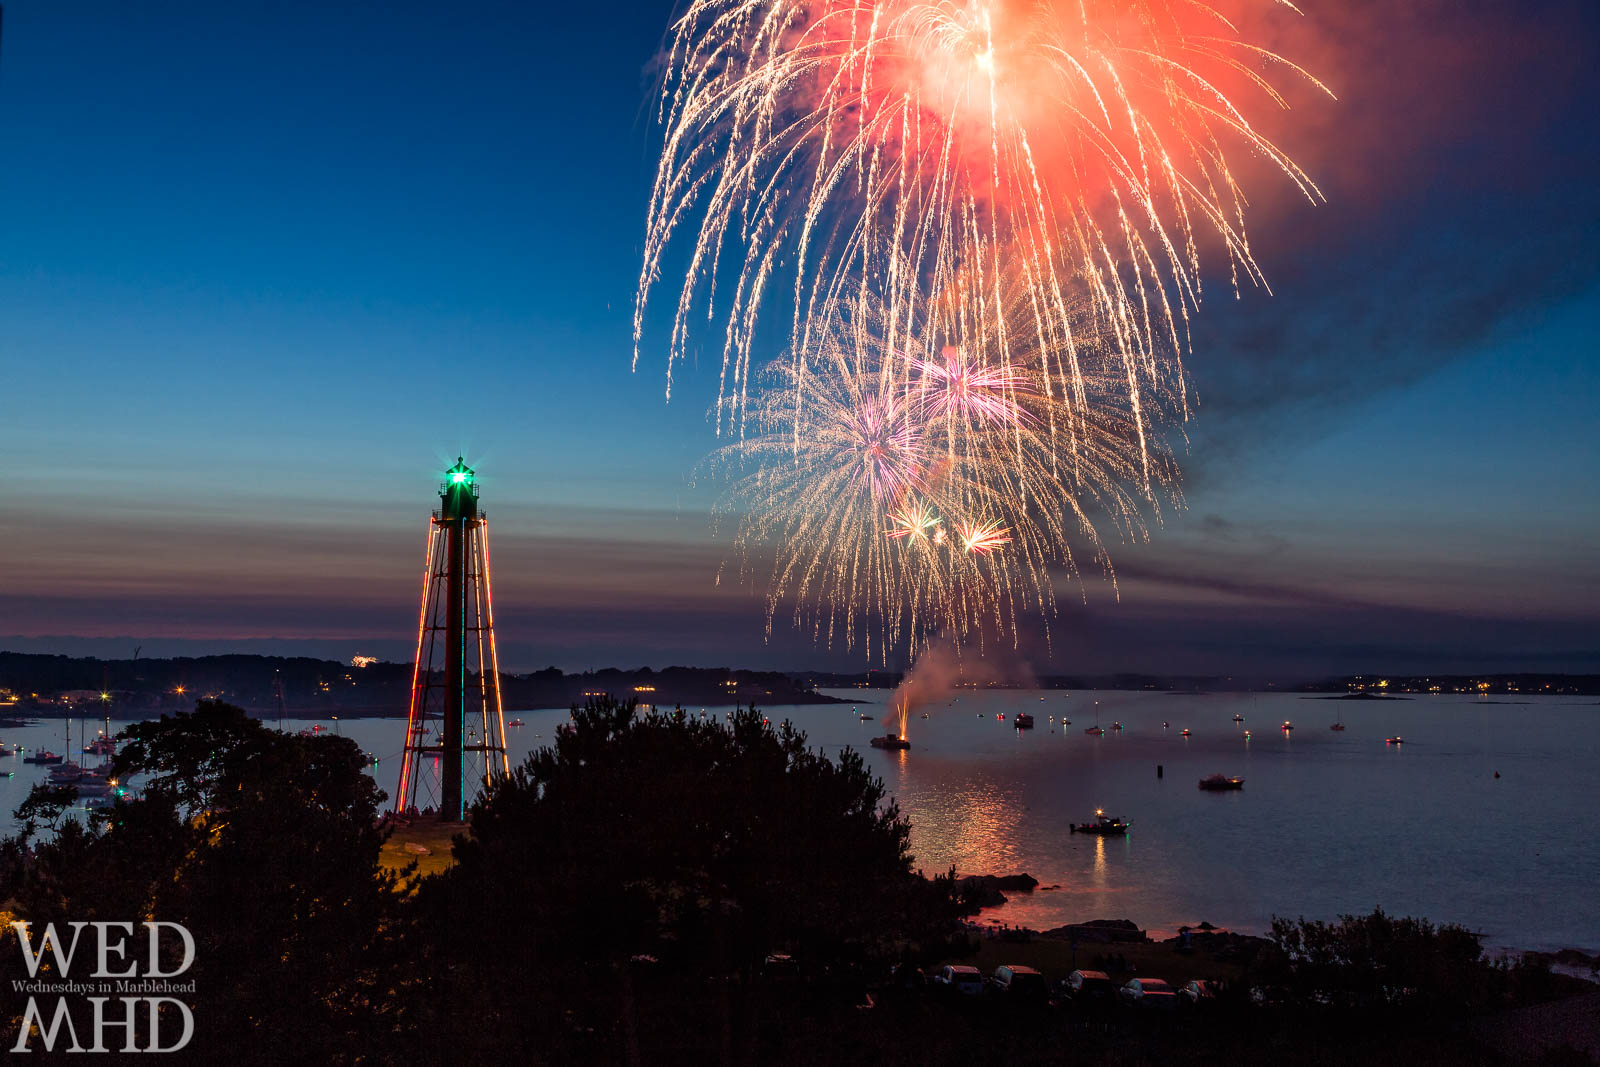 Indepence day is celebrated with the annual Marblehead fireworks show as seen from a cupola looking down on Marblehead Light and a volley of explosions